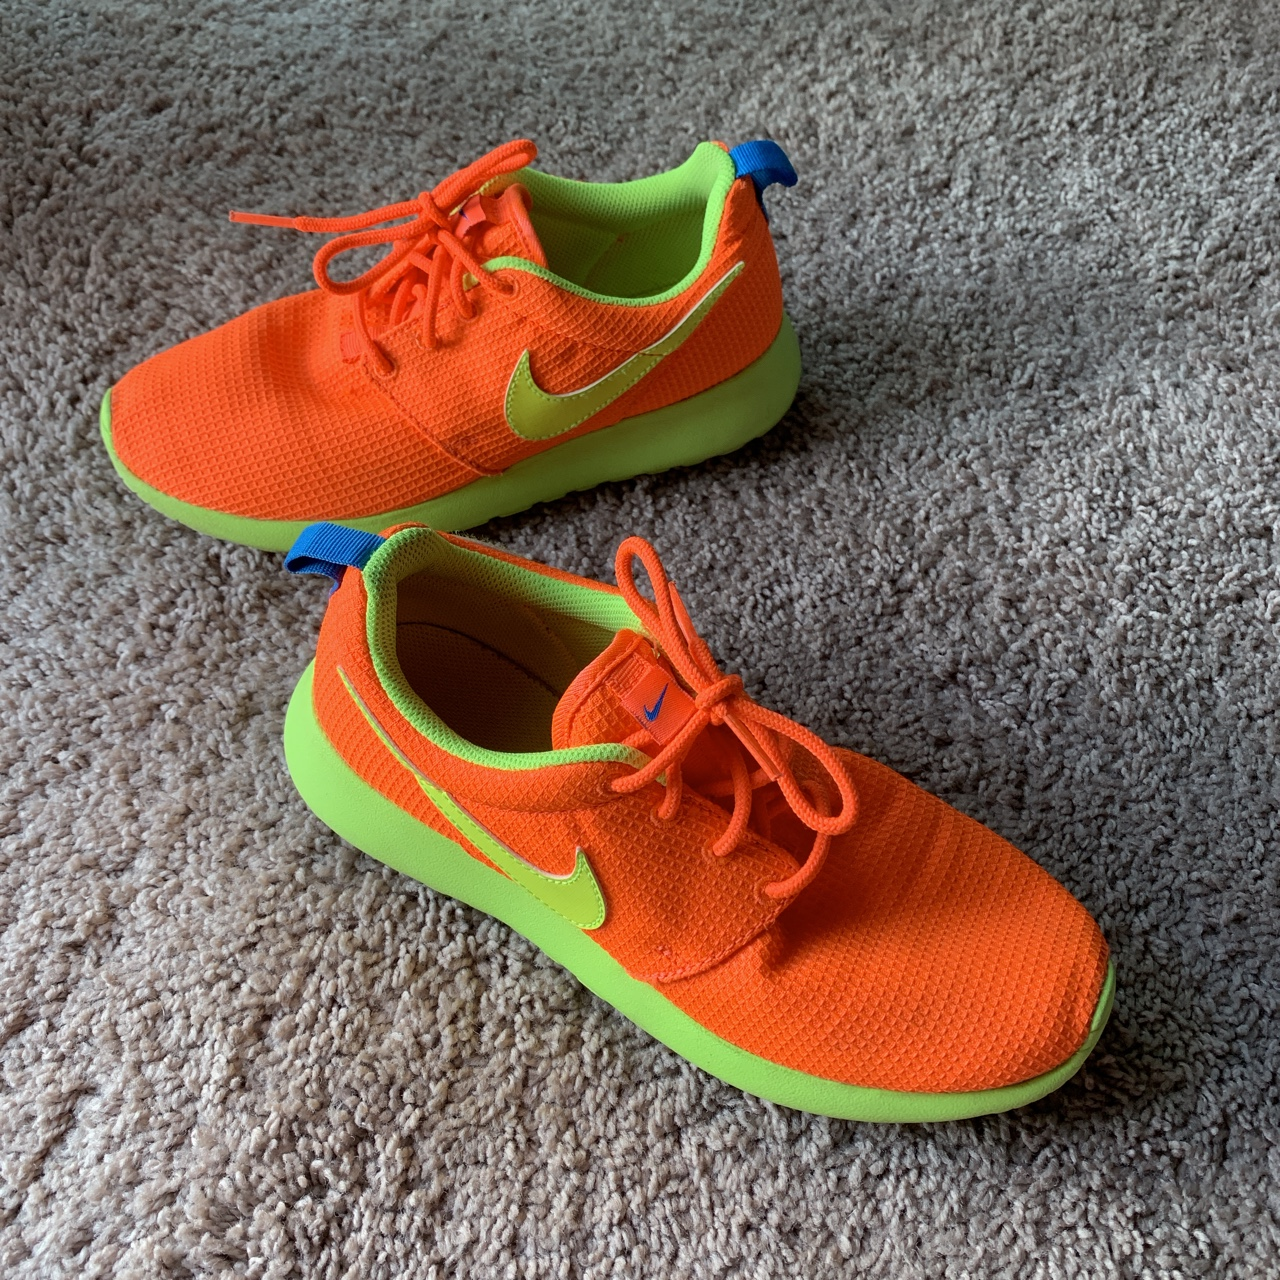 quality design e1c37 a0089 Neon orange Nike Roshe 1s! Condition: 9/10 Gently... - Depop